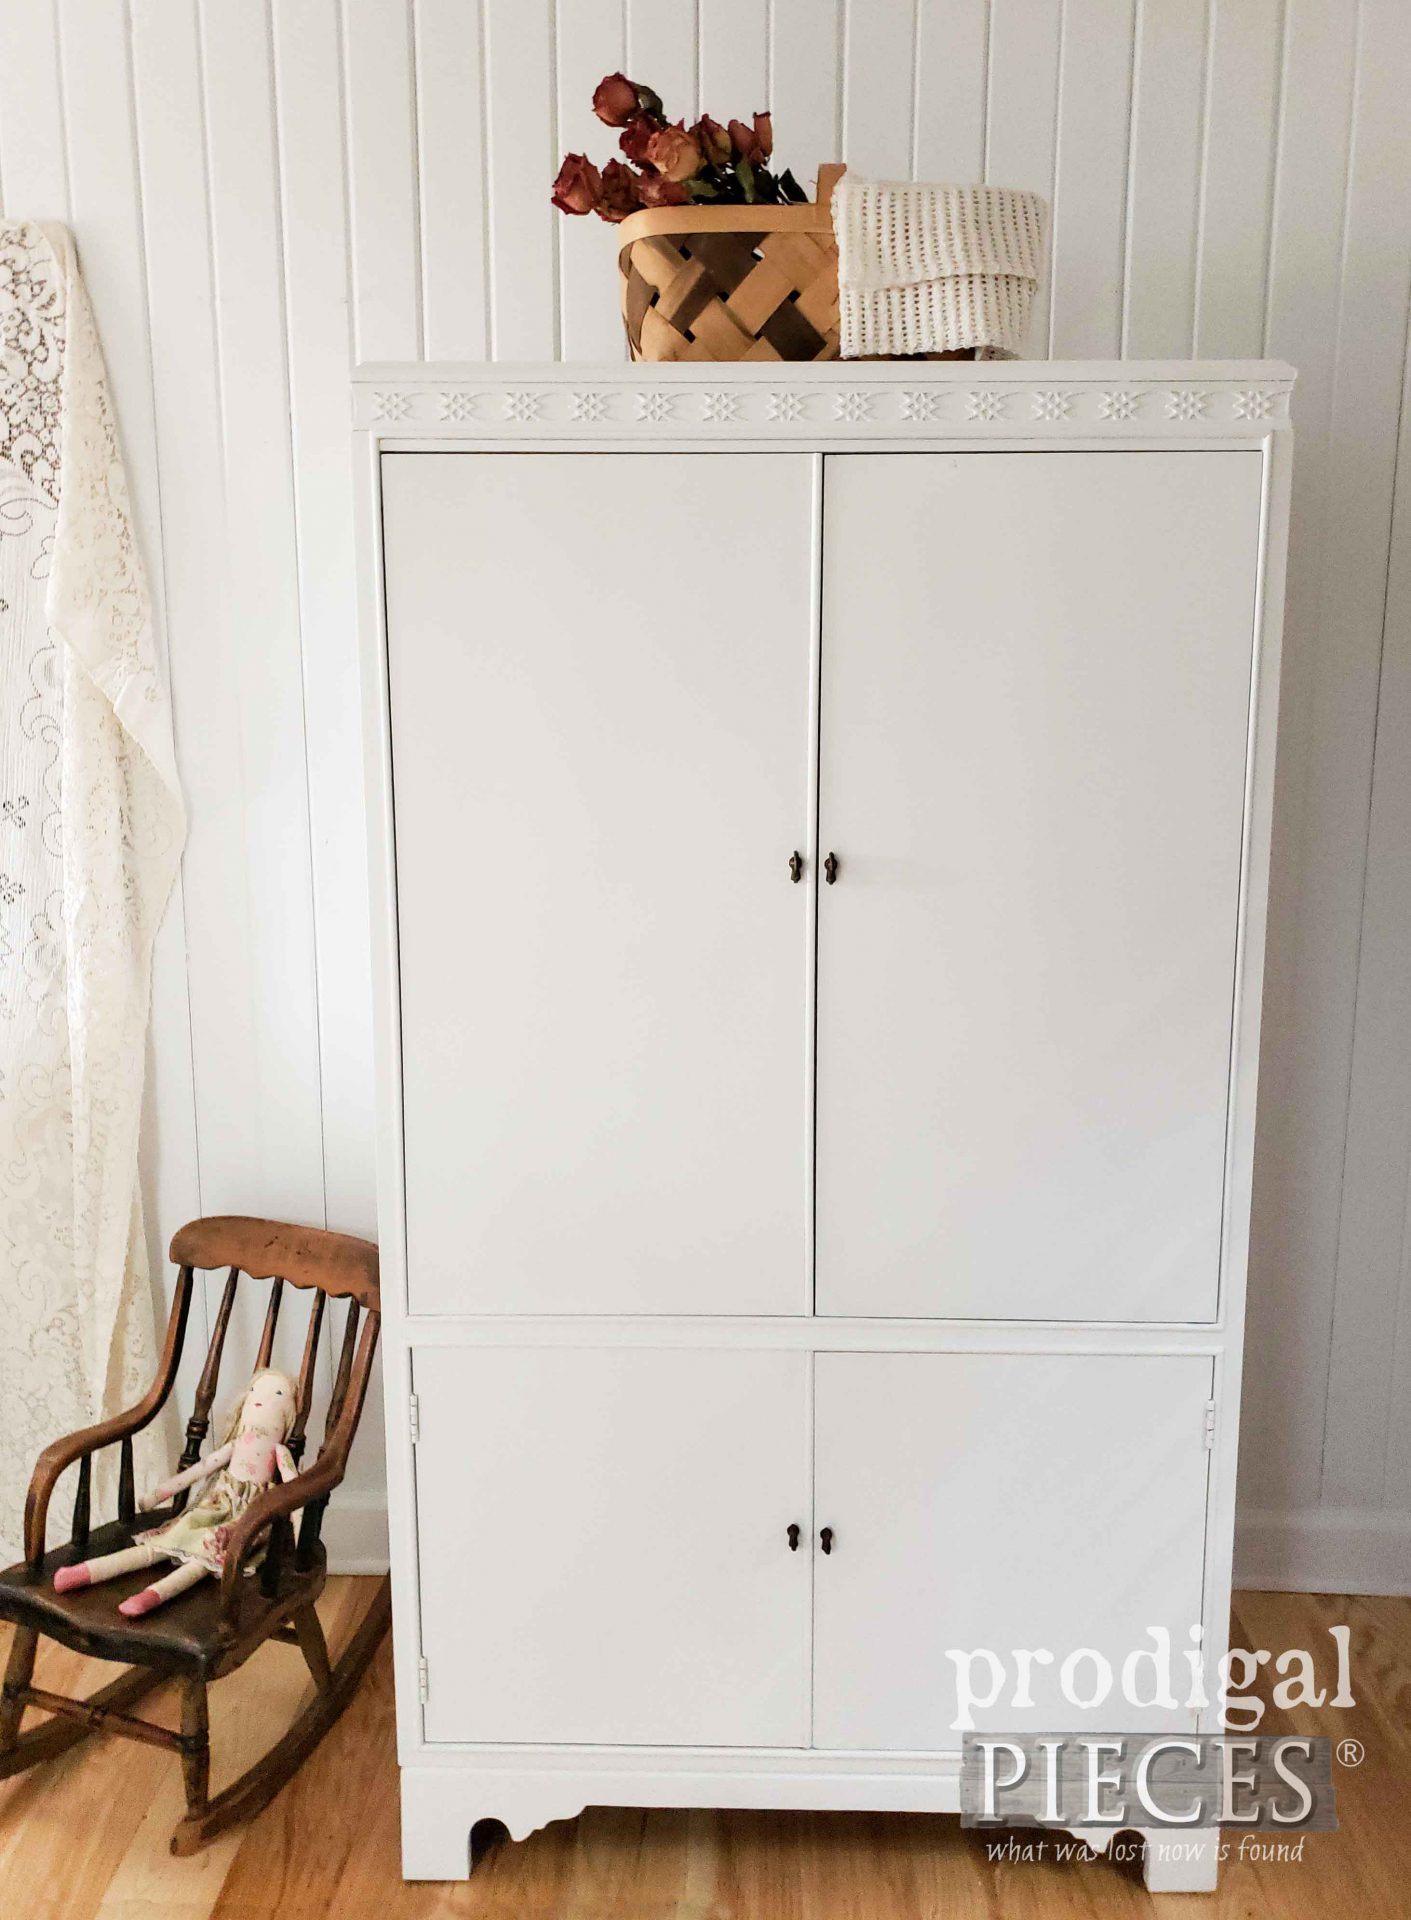 Vintage White Wardrobe DIY from Upcycled Entertainment Center by Larissa of Prodigal Pieces | prodigalpieces.com #prodigalpieces #furniture #diy #home #baby #nursery #homedecor